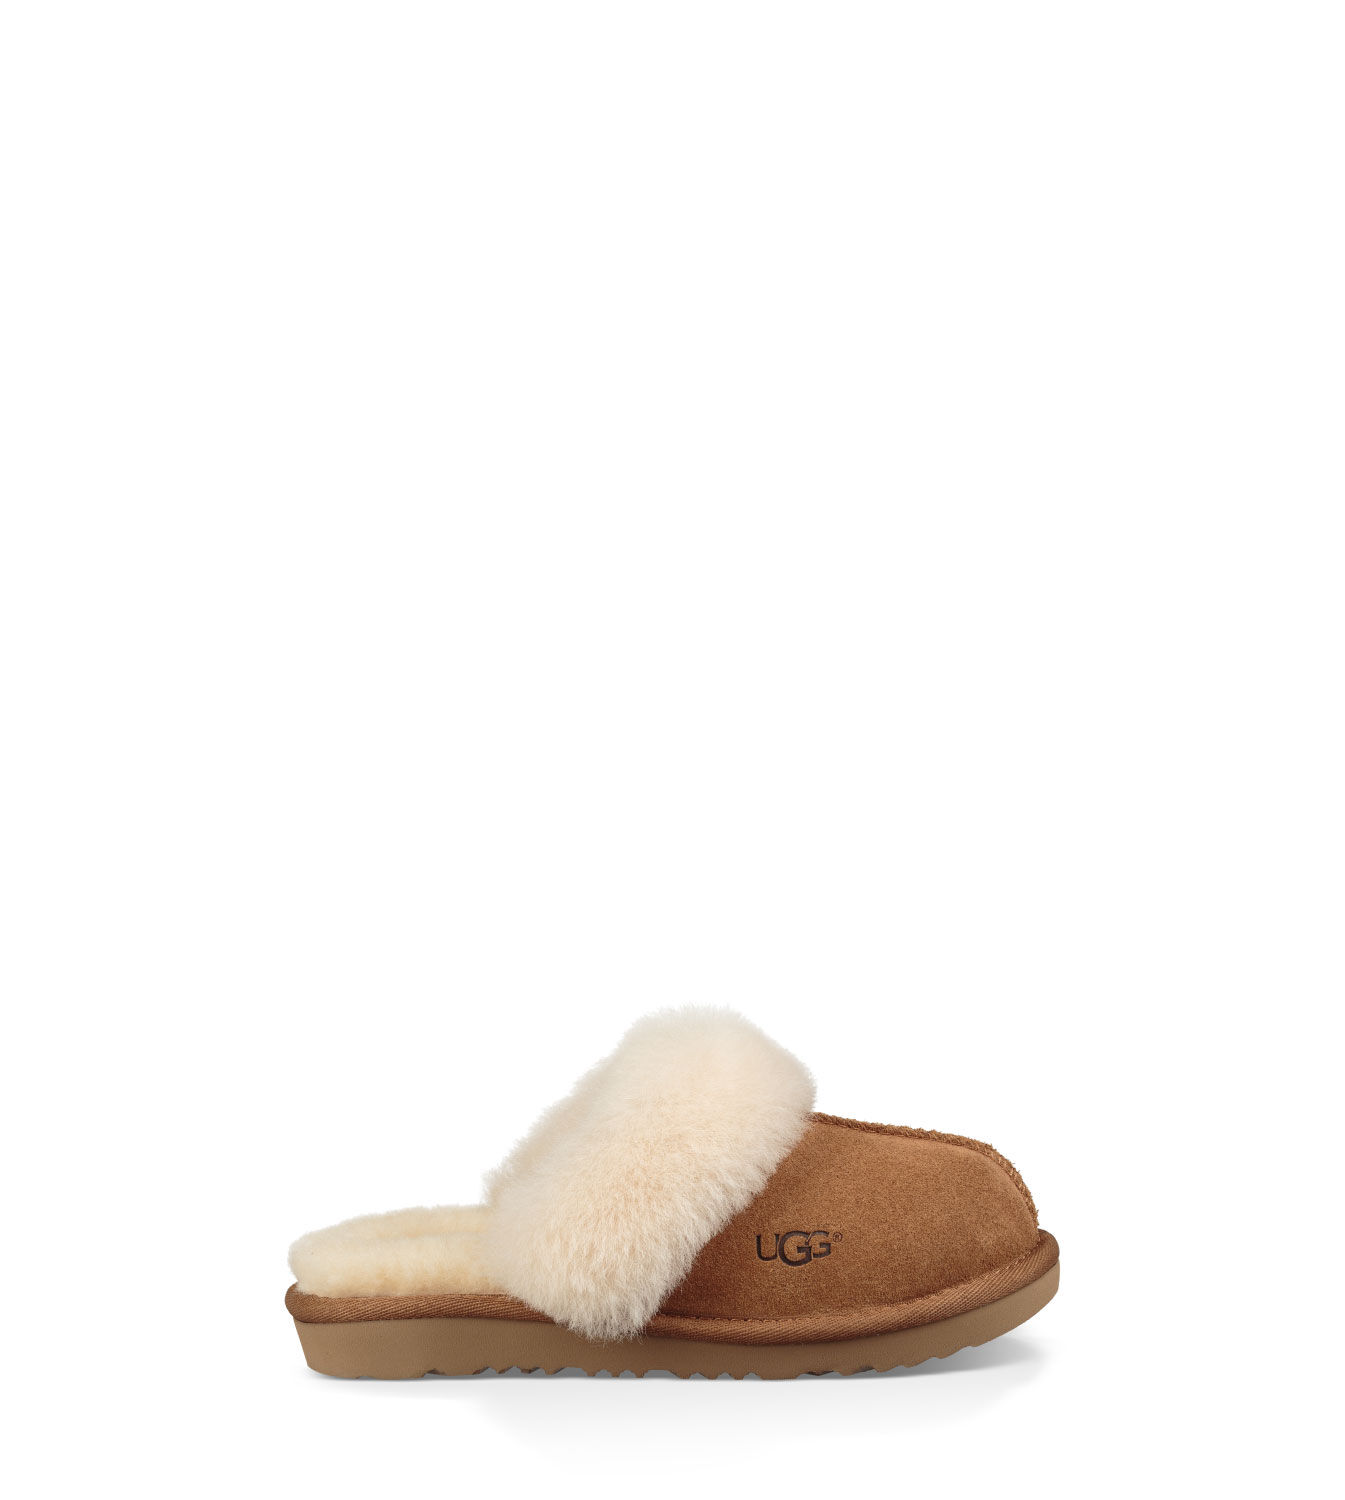 Kids' Slippers and Moccasins | UGG